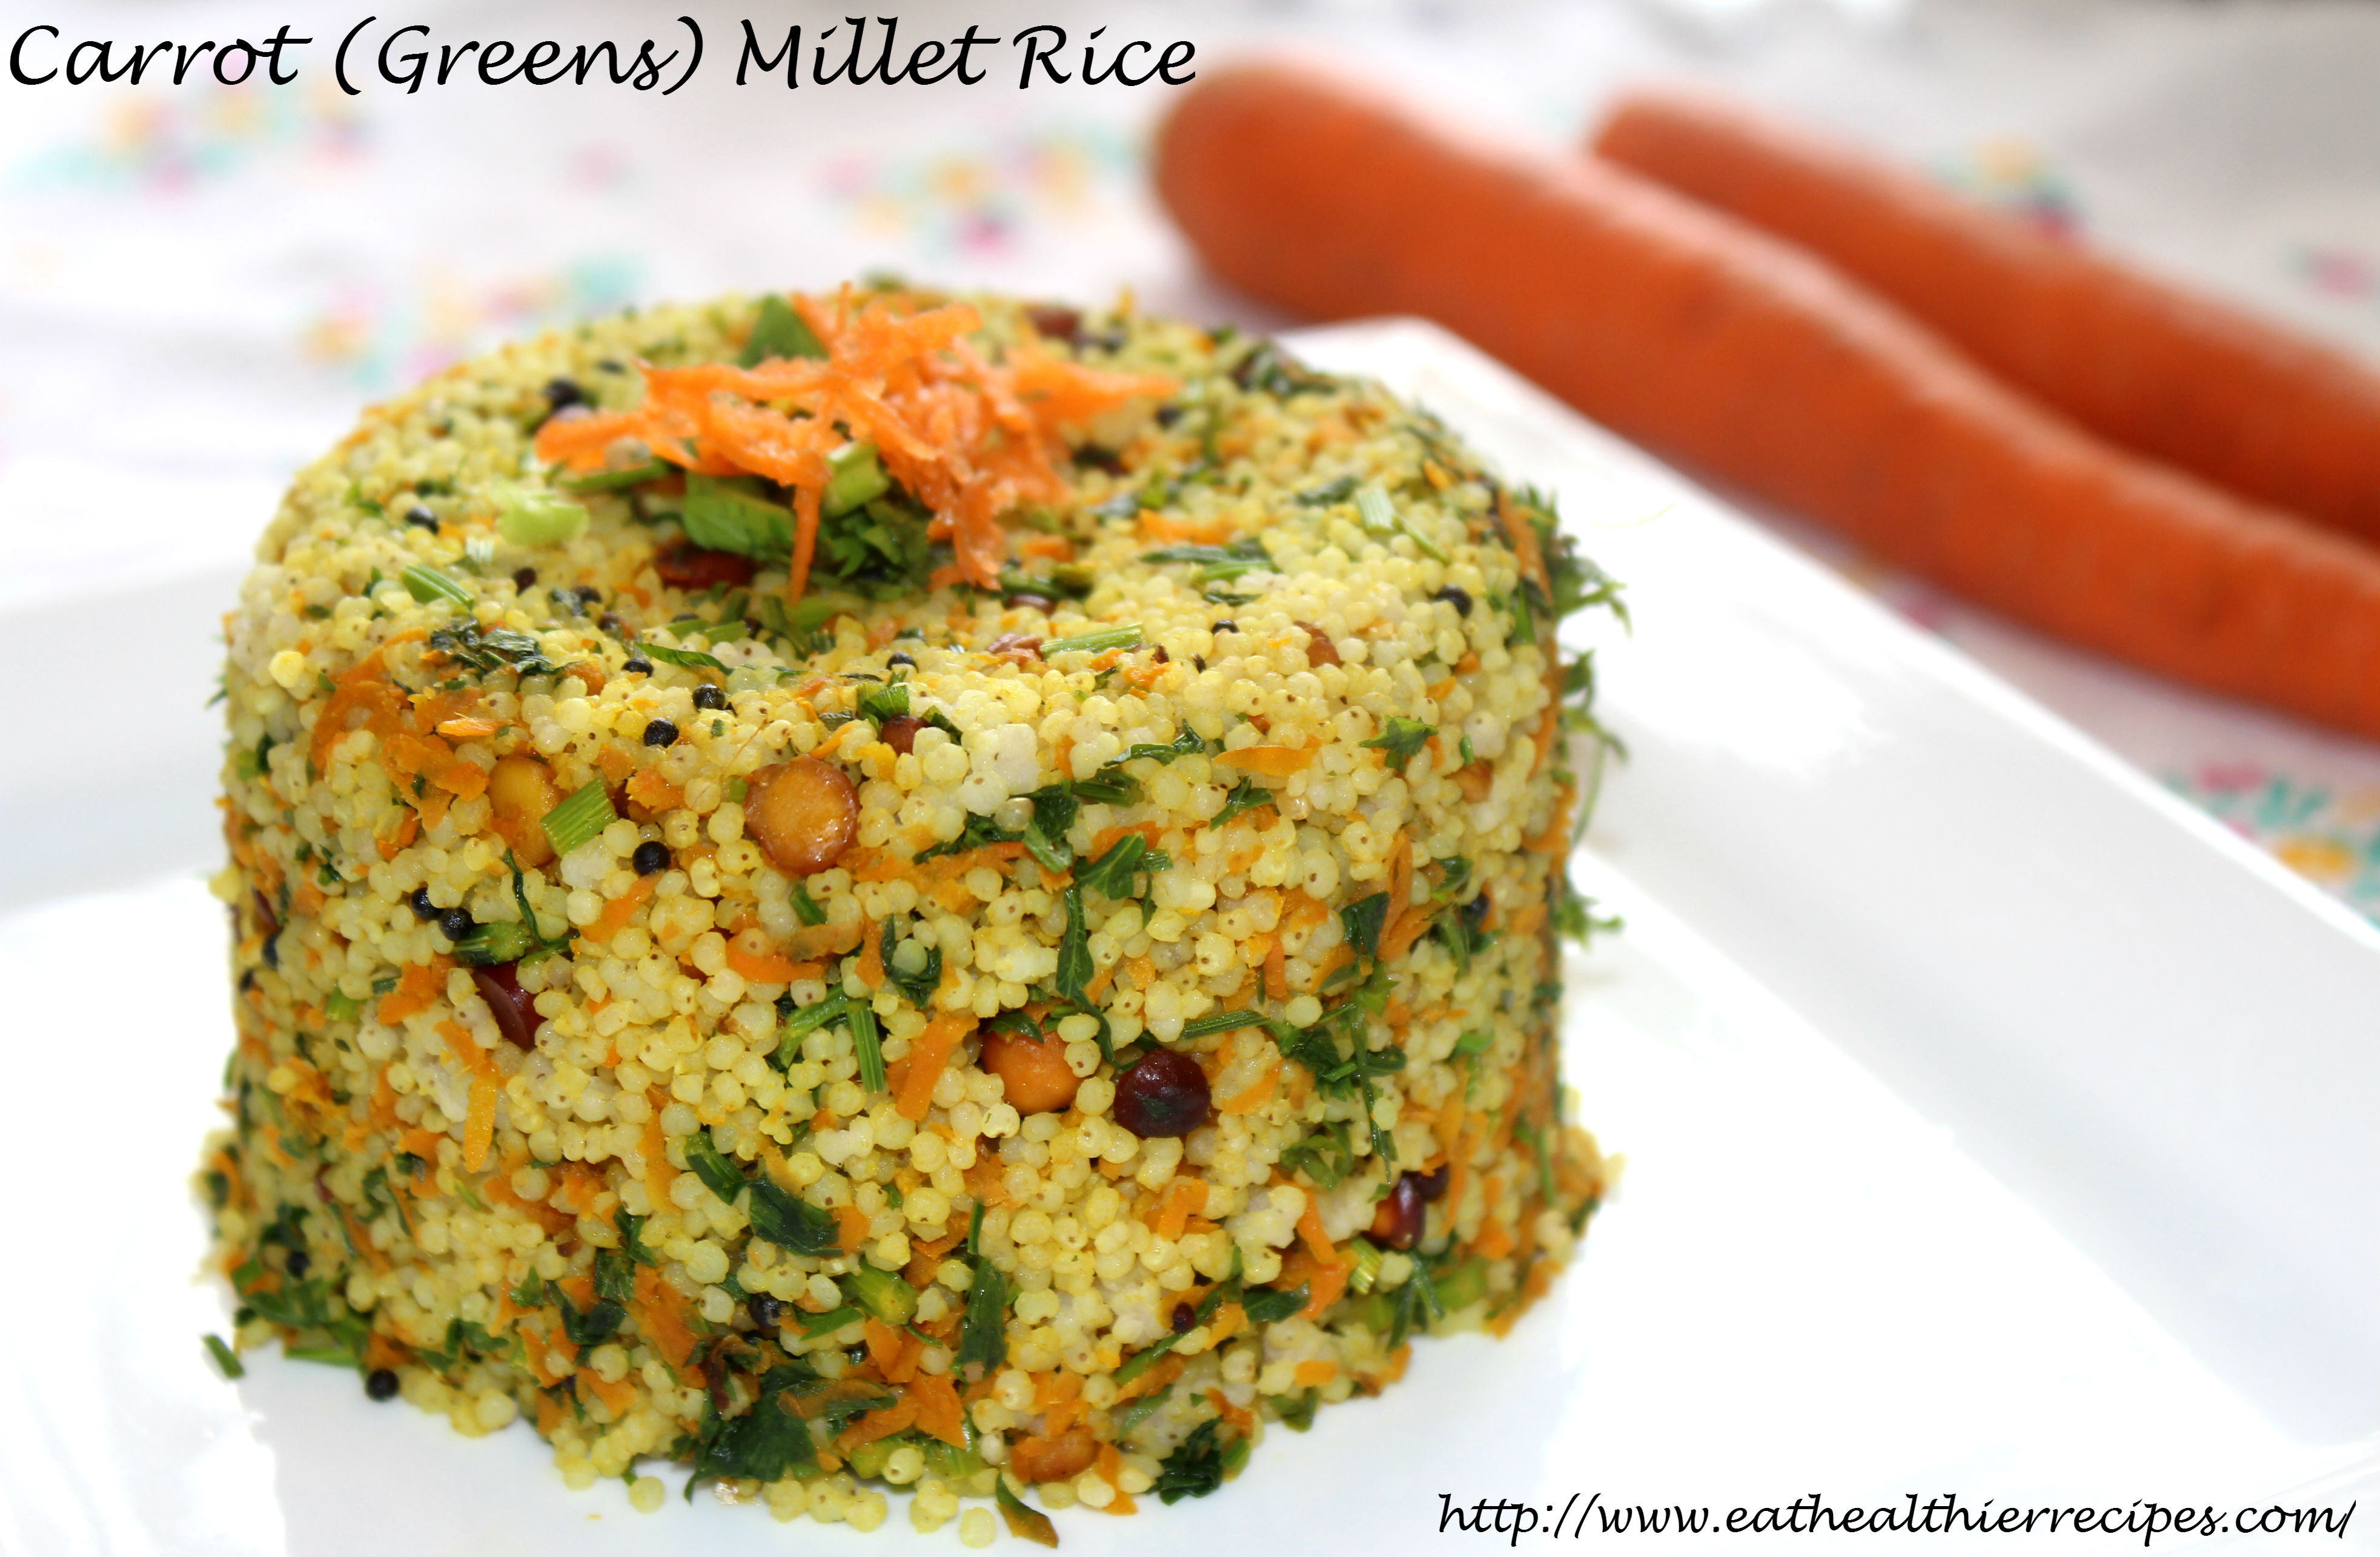 Carrot (Greens) Millet Rice